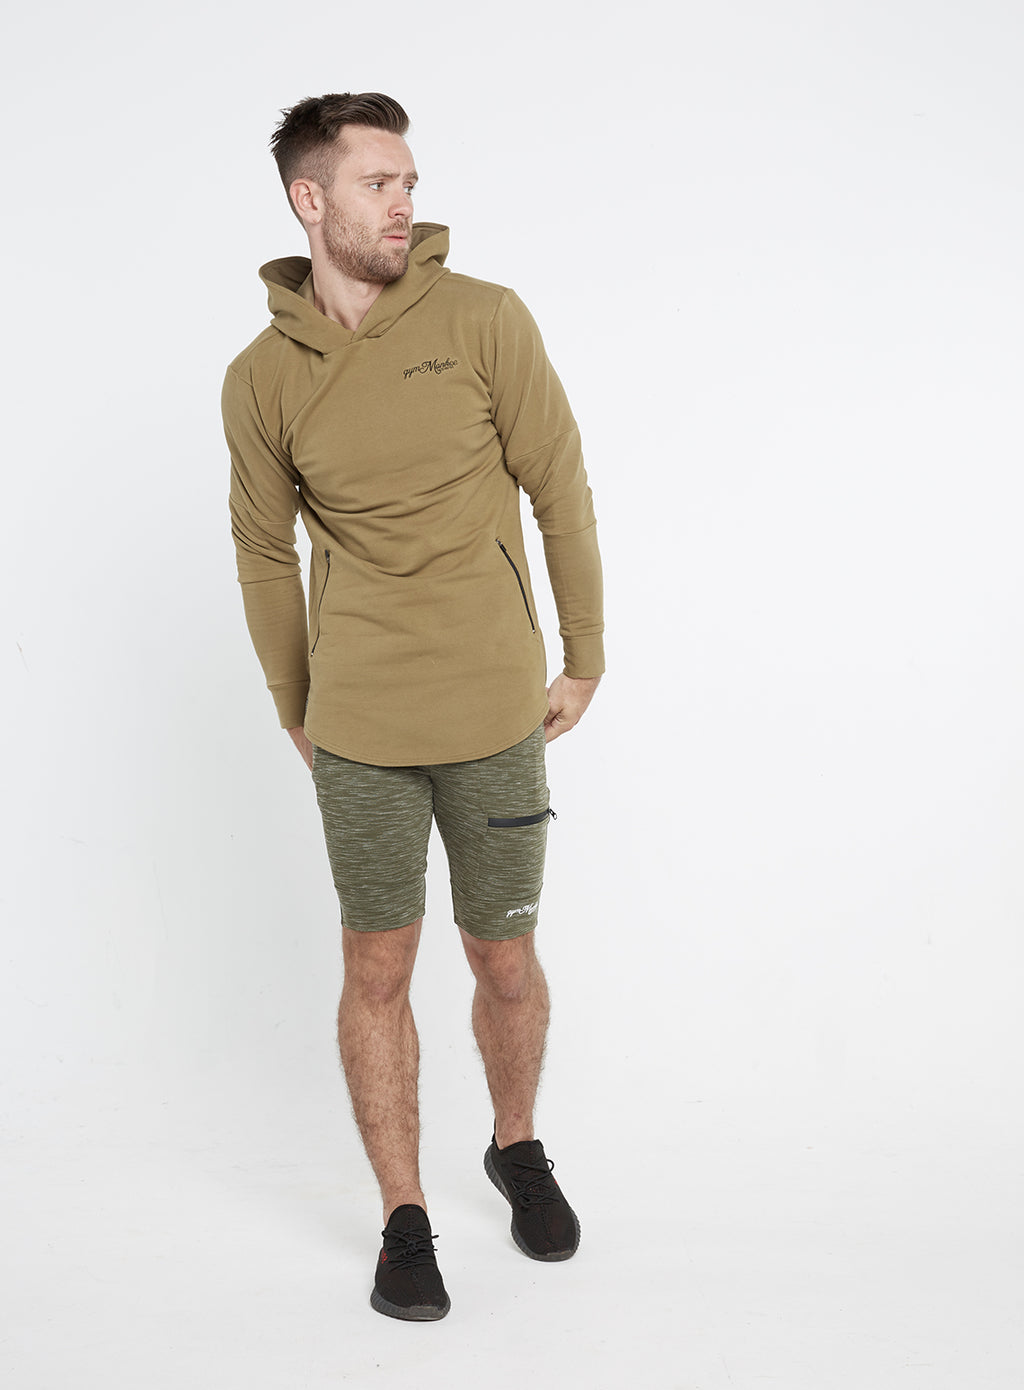 Gym Monkee - Khaki Hoodie FRONT FULL